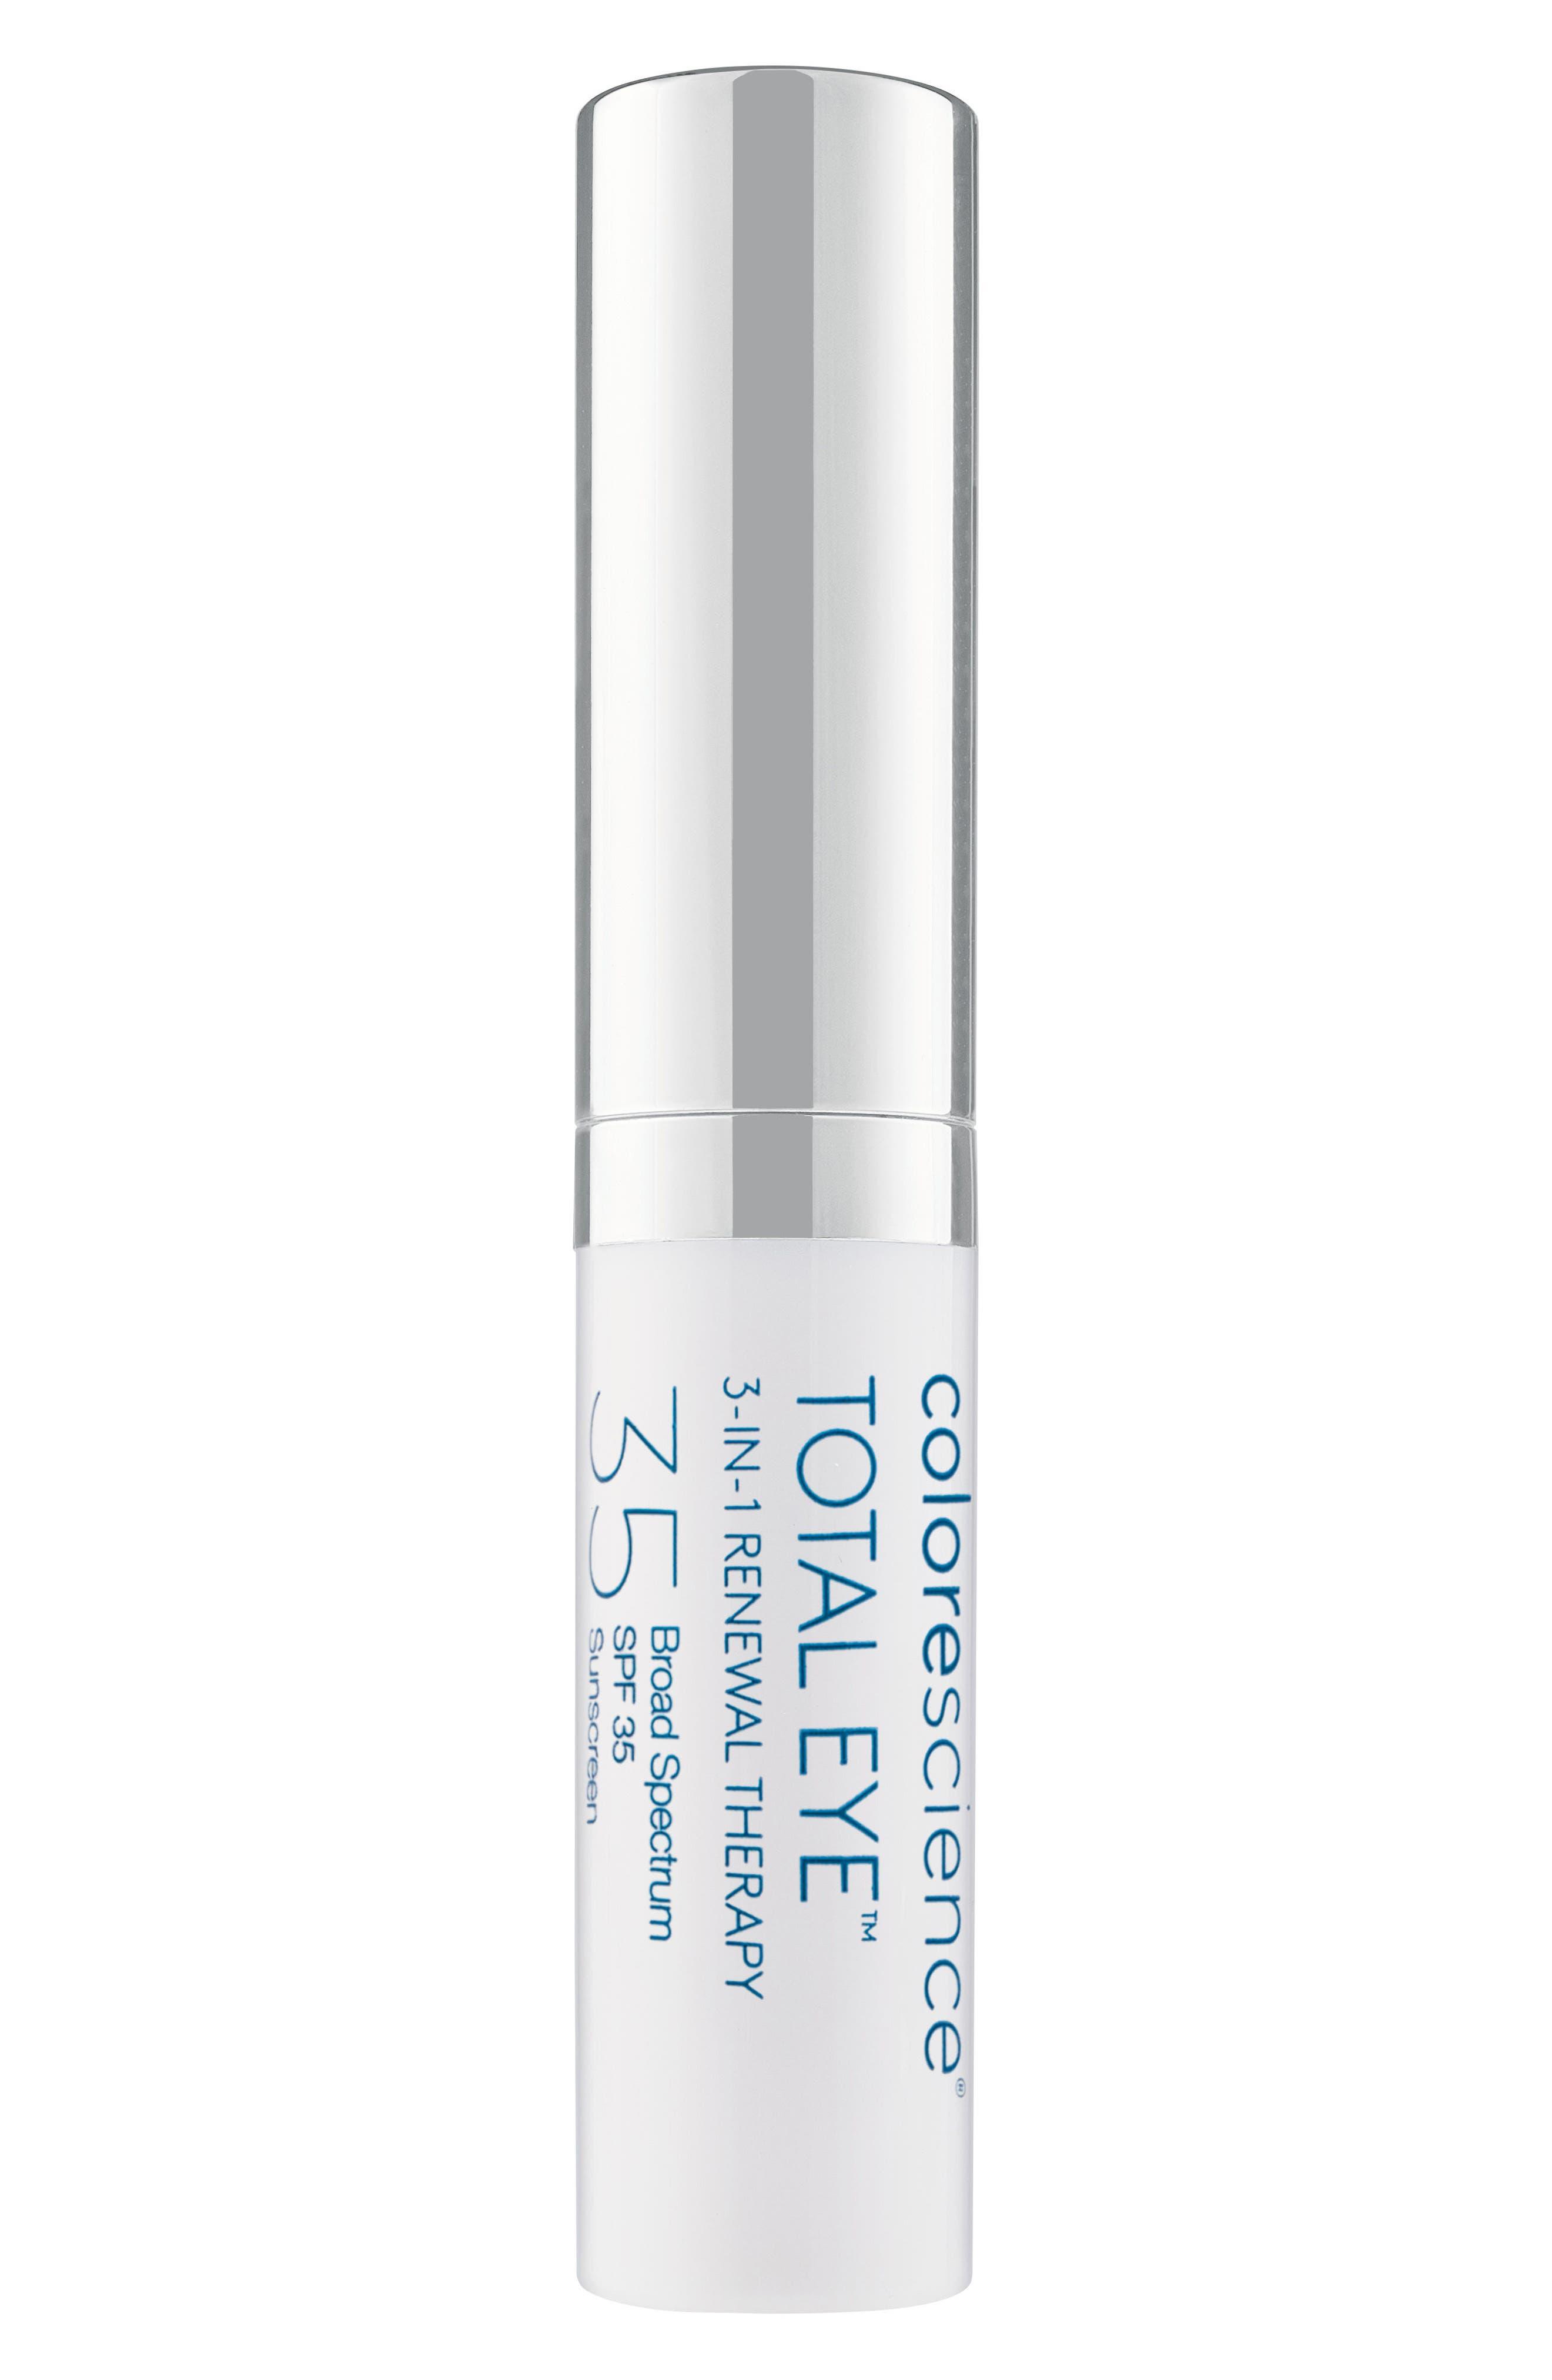 Colorescience Total Eye 3-In-1 Renewal Therapy Broad Spectrum Spf 35 Concealer